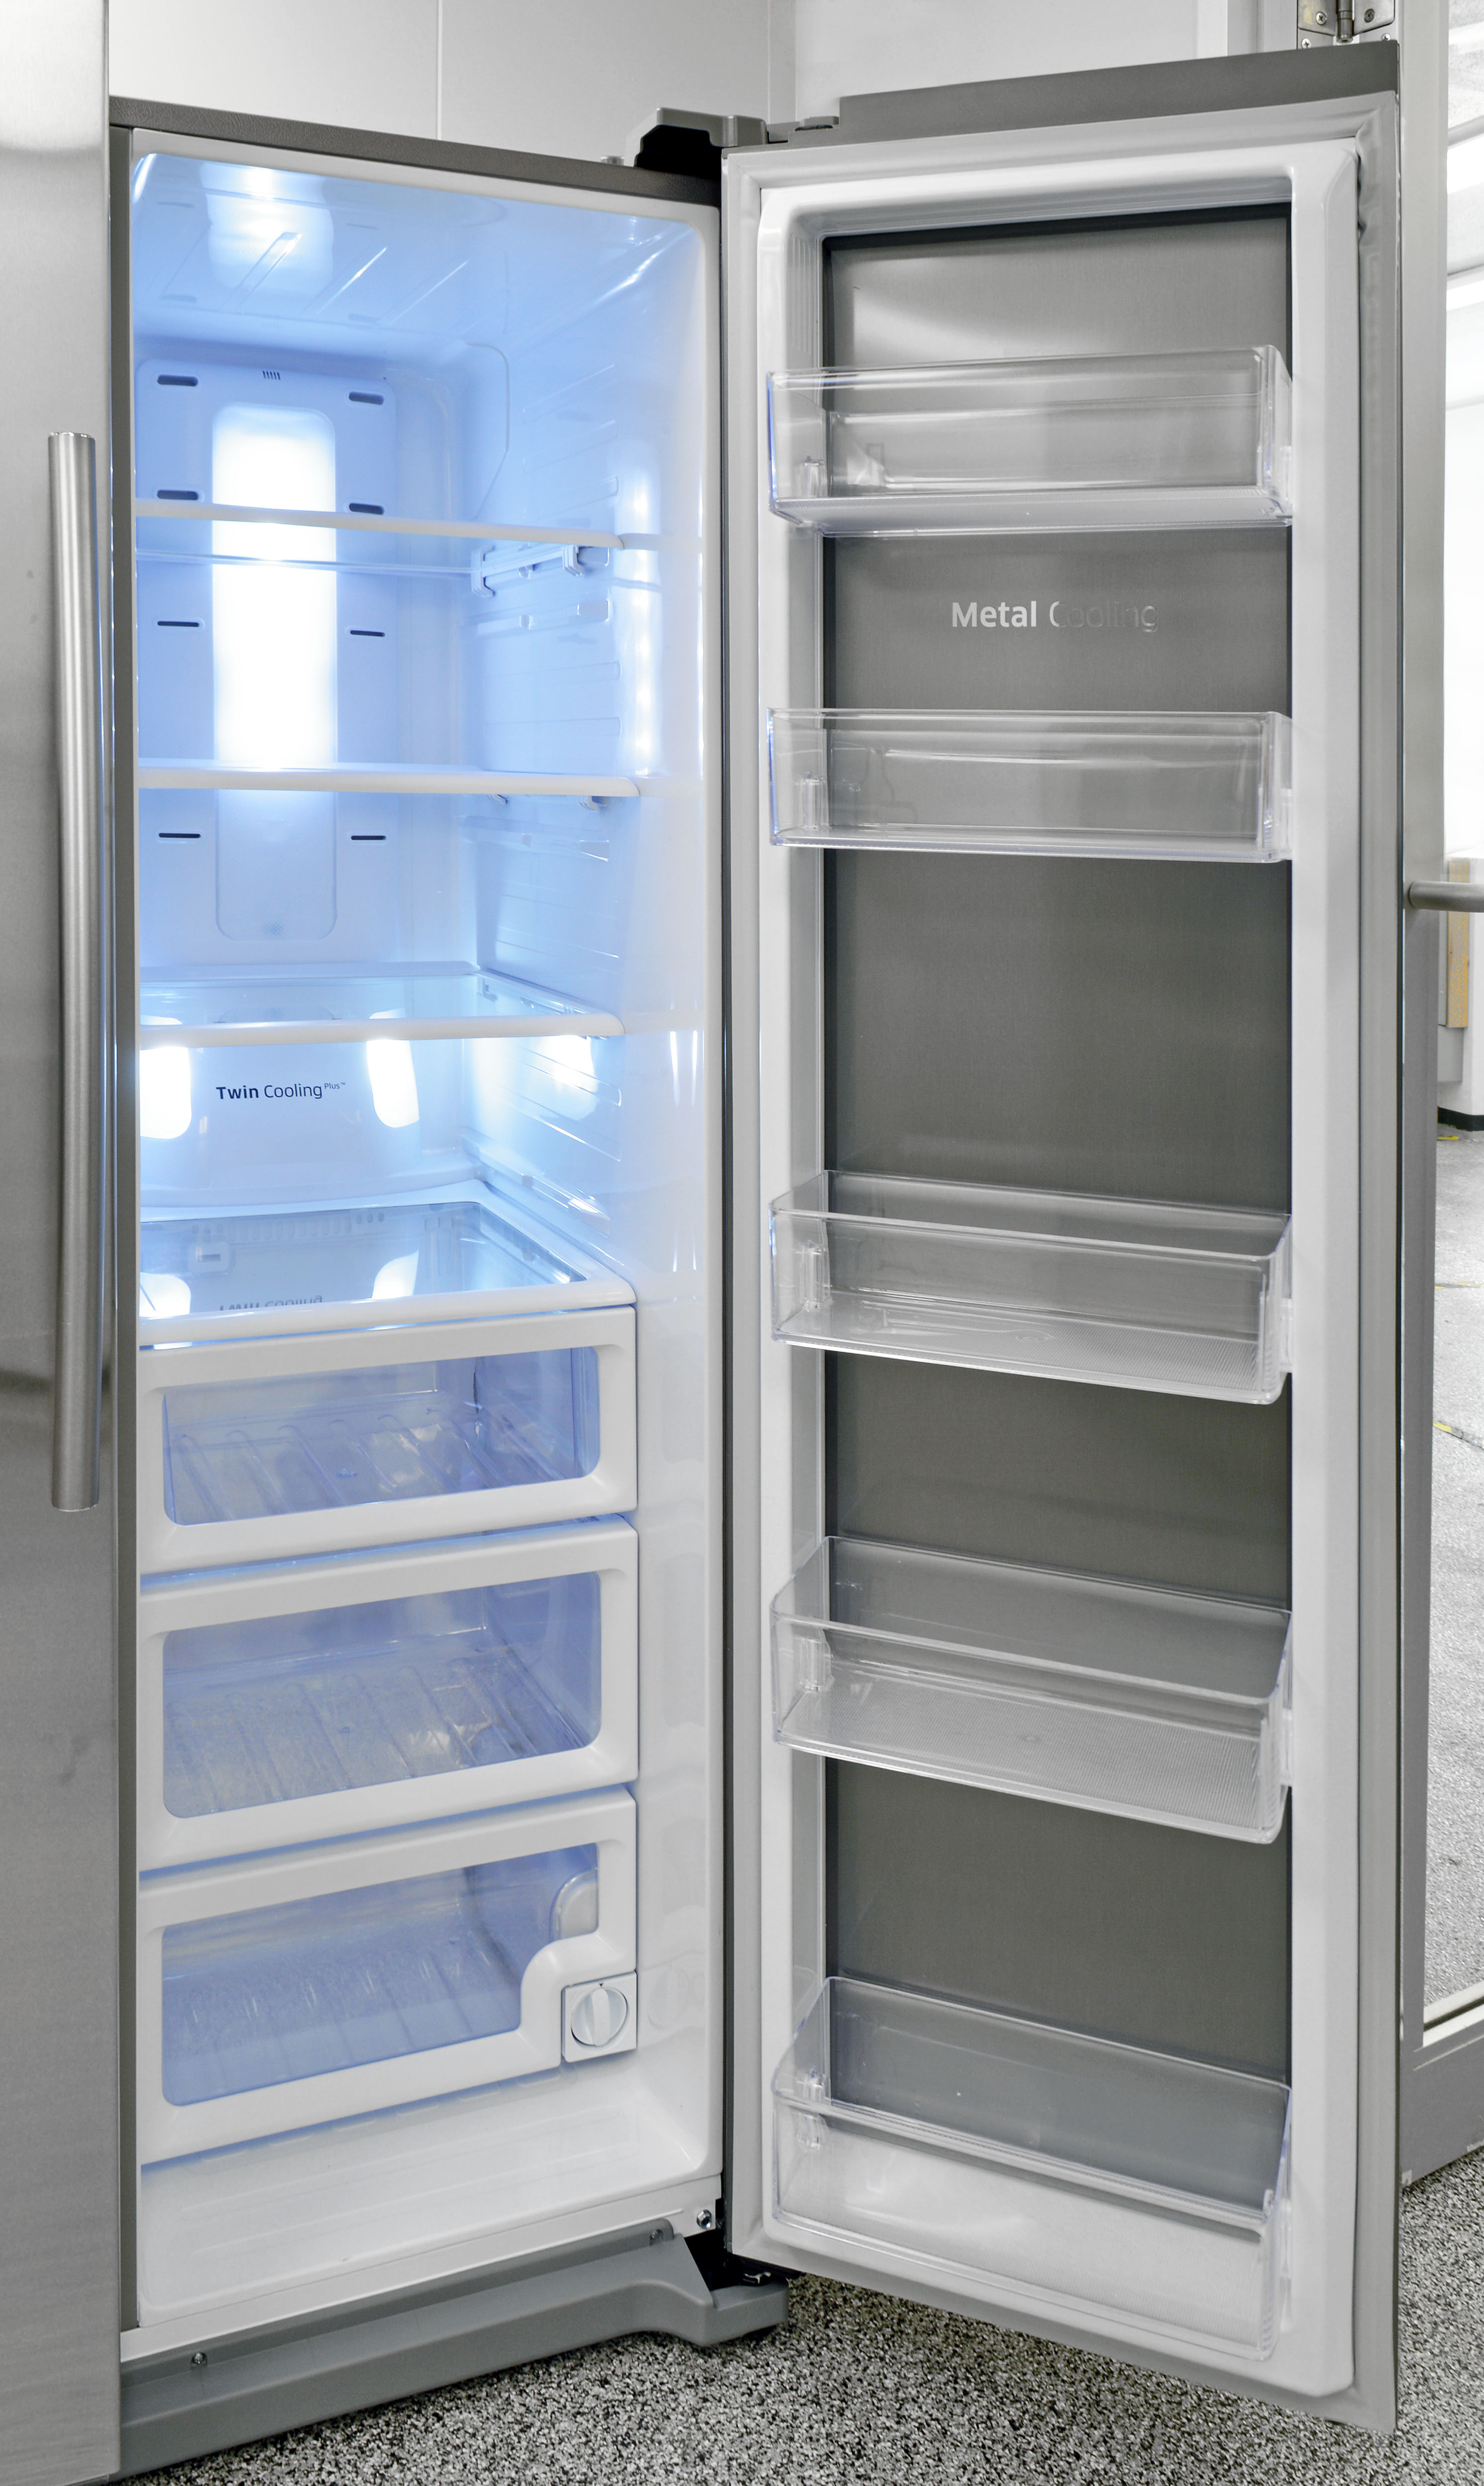 The Samsung RH25H5611SR has lots of shelves, but not as much customizable flexibility as you might expect for a fridge this pricey.